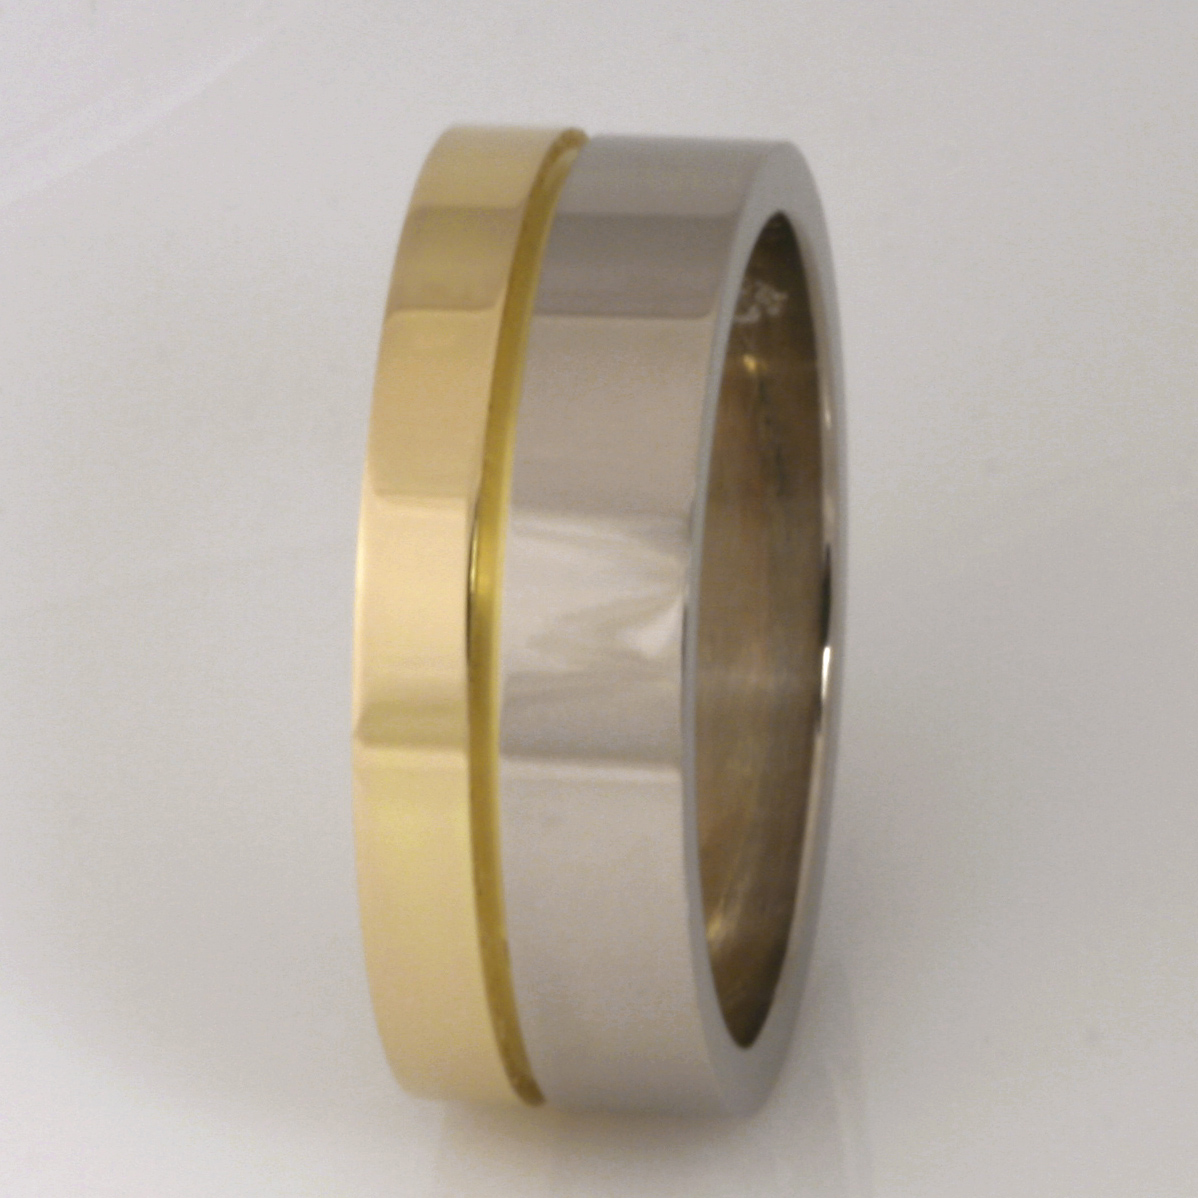 Handmade gents 18ct yellow and white gold wedding ring